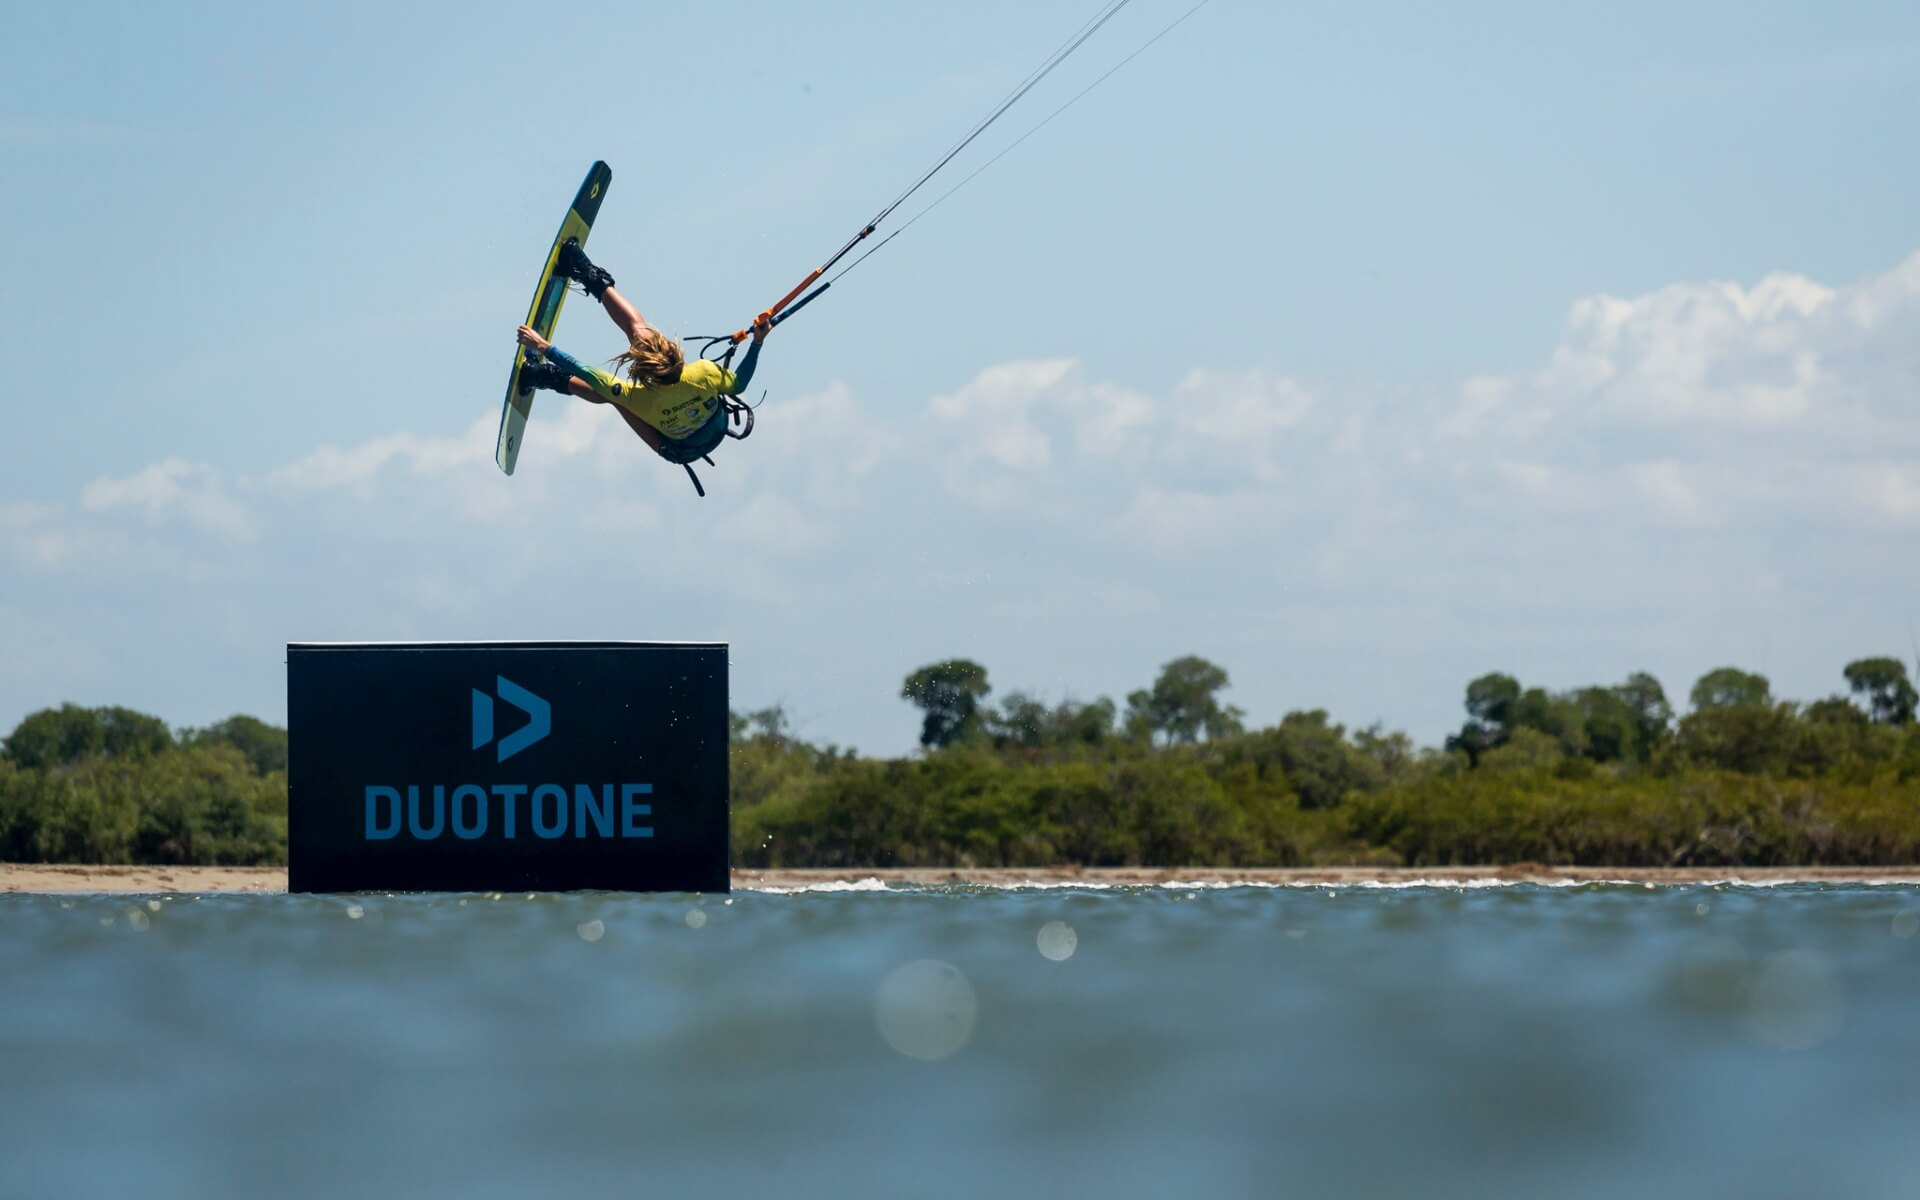 Duotone_Kiteboarding_Team_Colleen_Carroll_Kite_Mansion_Open